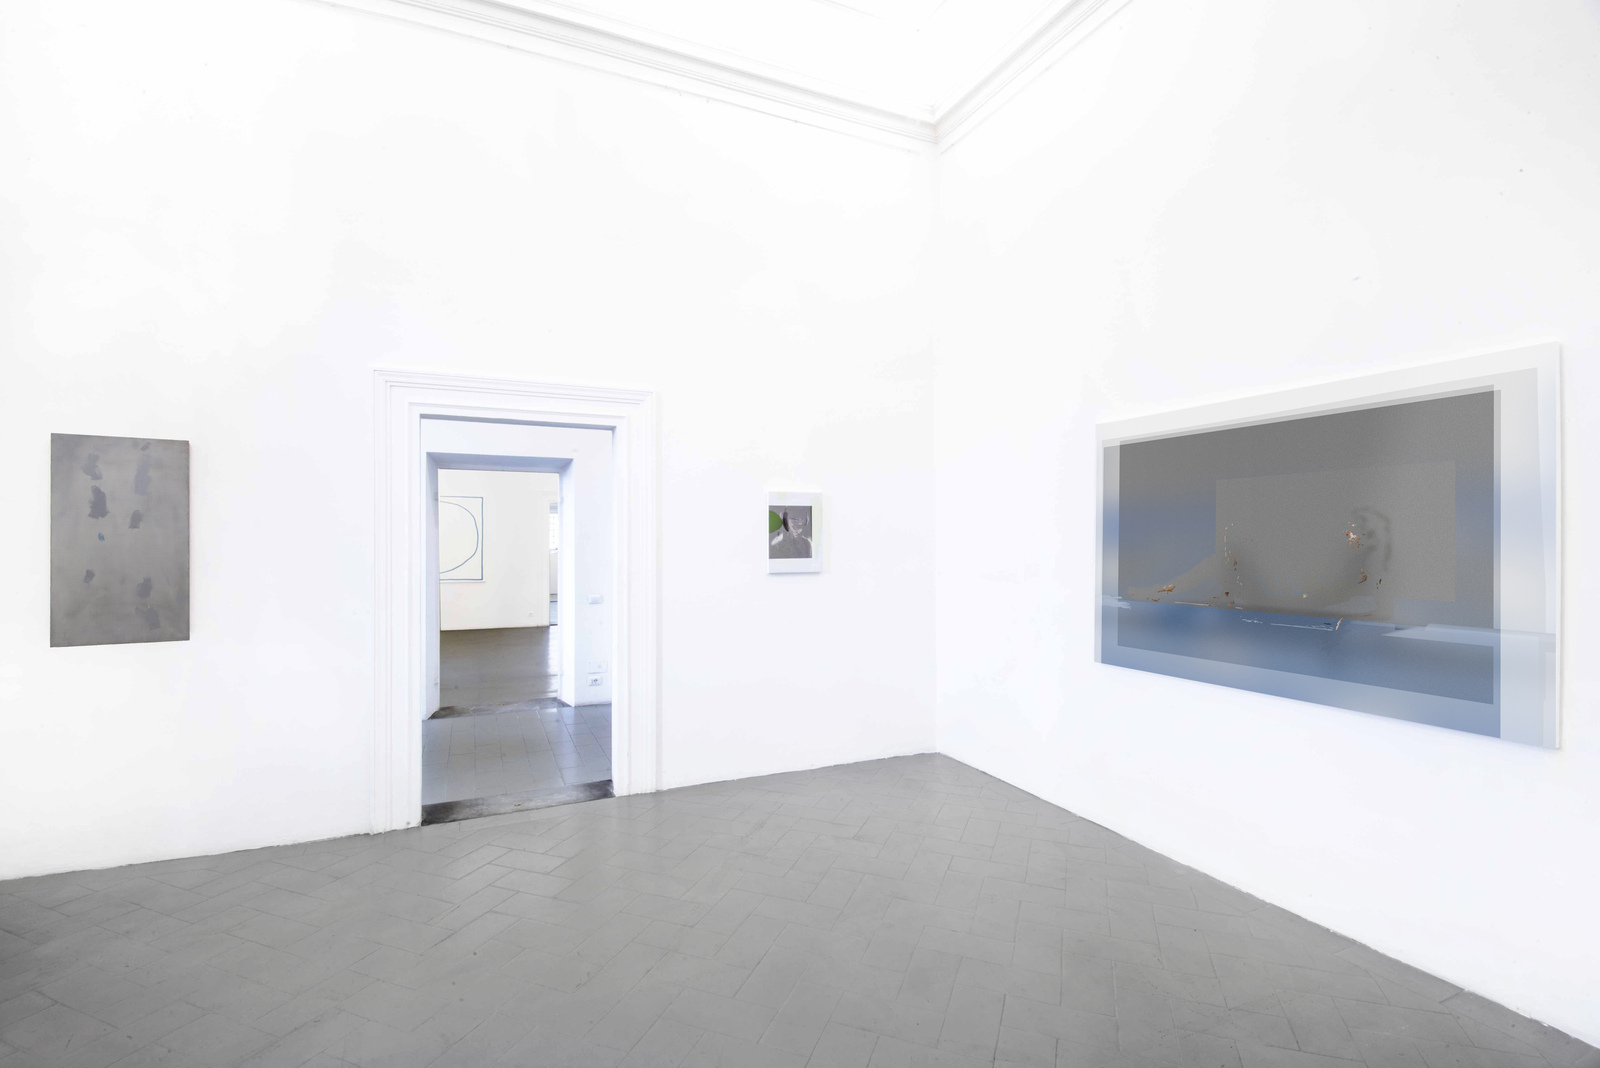 12.Installation View. Matthew Musgrave, Stephen Felton, Joshua Citarella. Courtesy of Eduardo Secci Contemporary